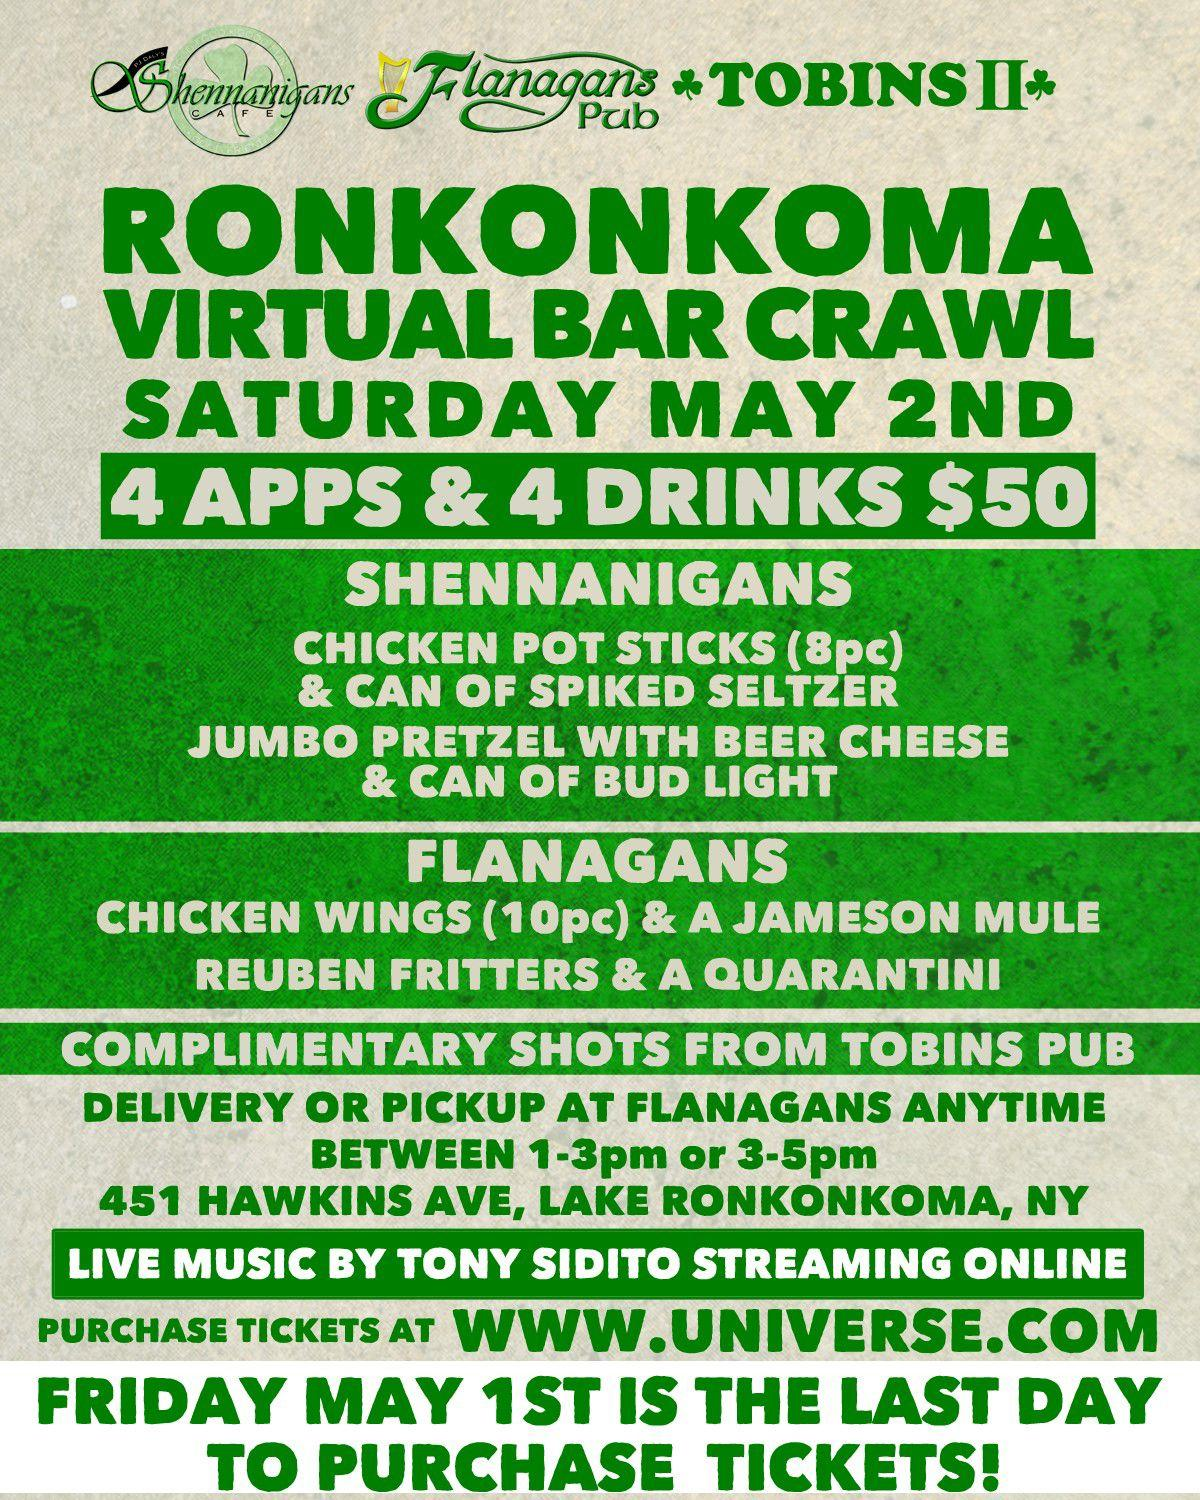 Ronkonkoma Virtual Bar Crawl - Buy NOW for May 2 Event - Flyer